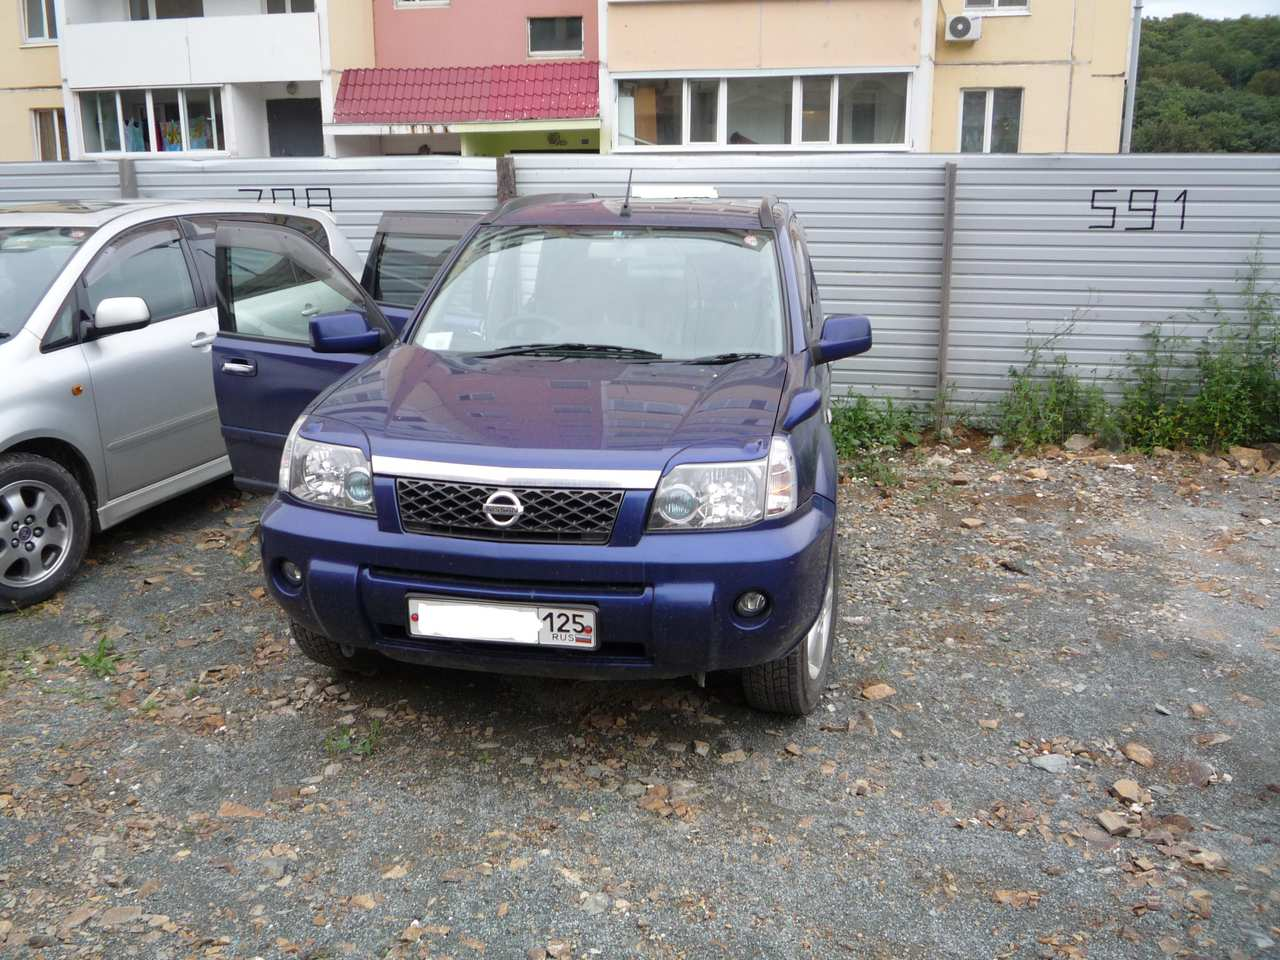 used 2004 nissan x trail photos 2000cc gasoline automatic for sale. Black Bedroom Furniture Sets. Home Design Ideas